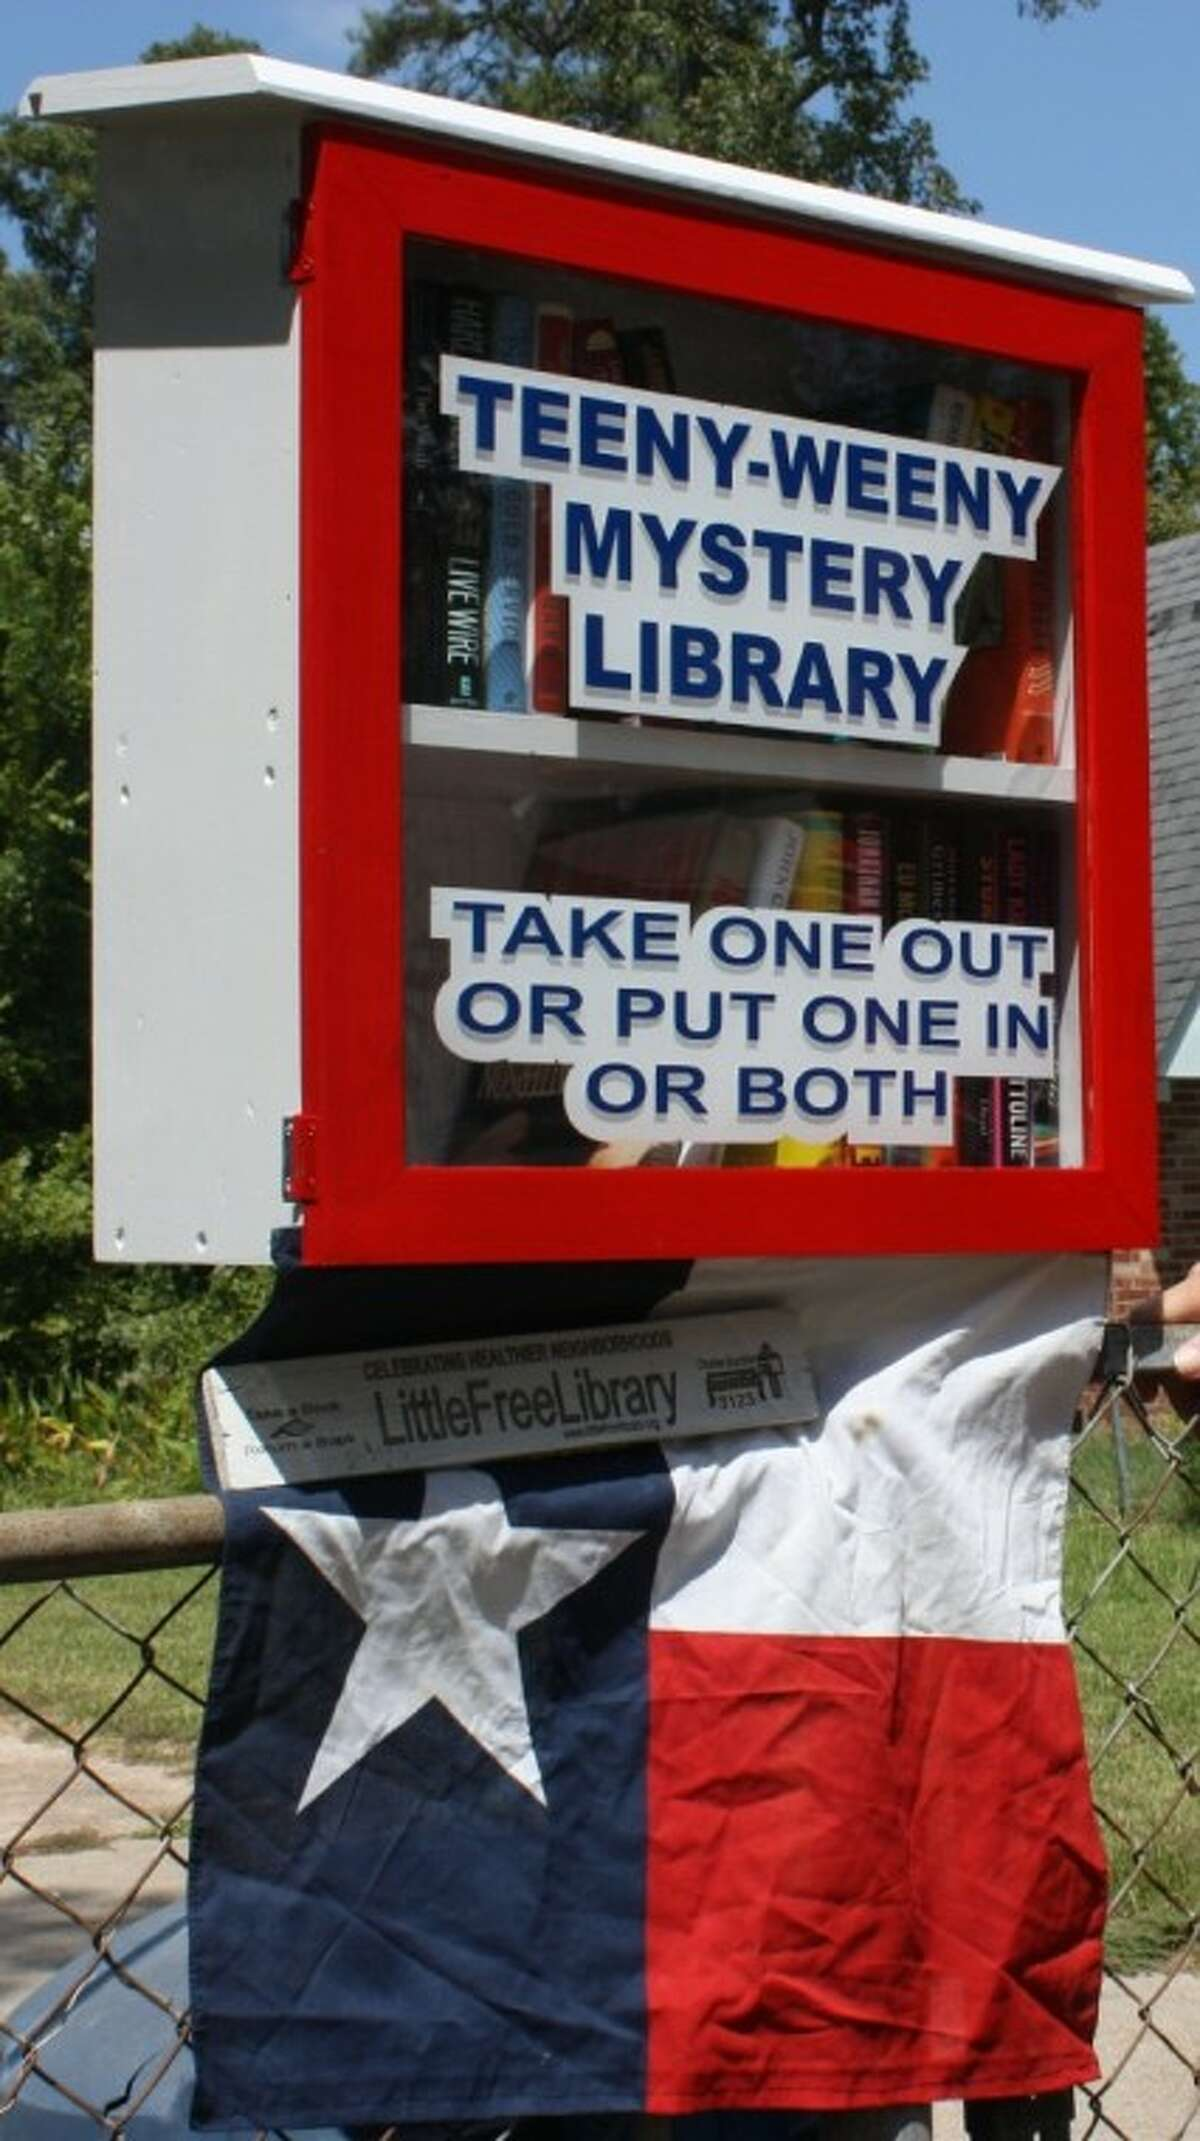 Joe Parsons' Little Free Library is called the Teeny Weeny Mystery Library because it contains mostly mystery novels and because mystery is his favorite genre of books. He has more than 300 books that he will try to circulate with the little library.